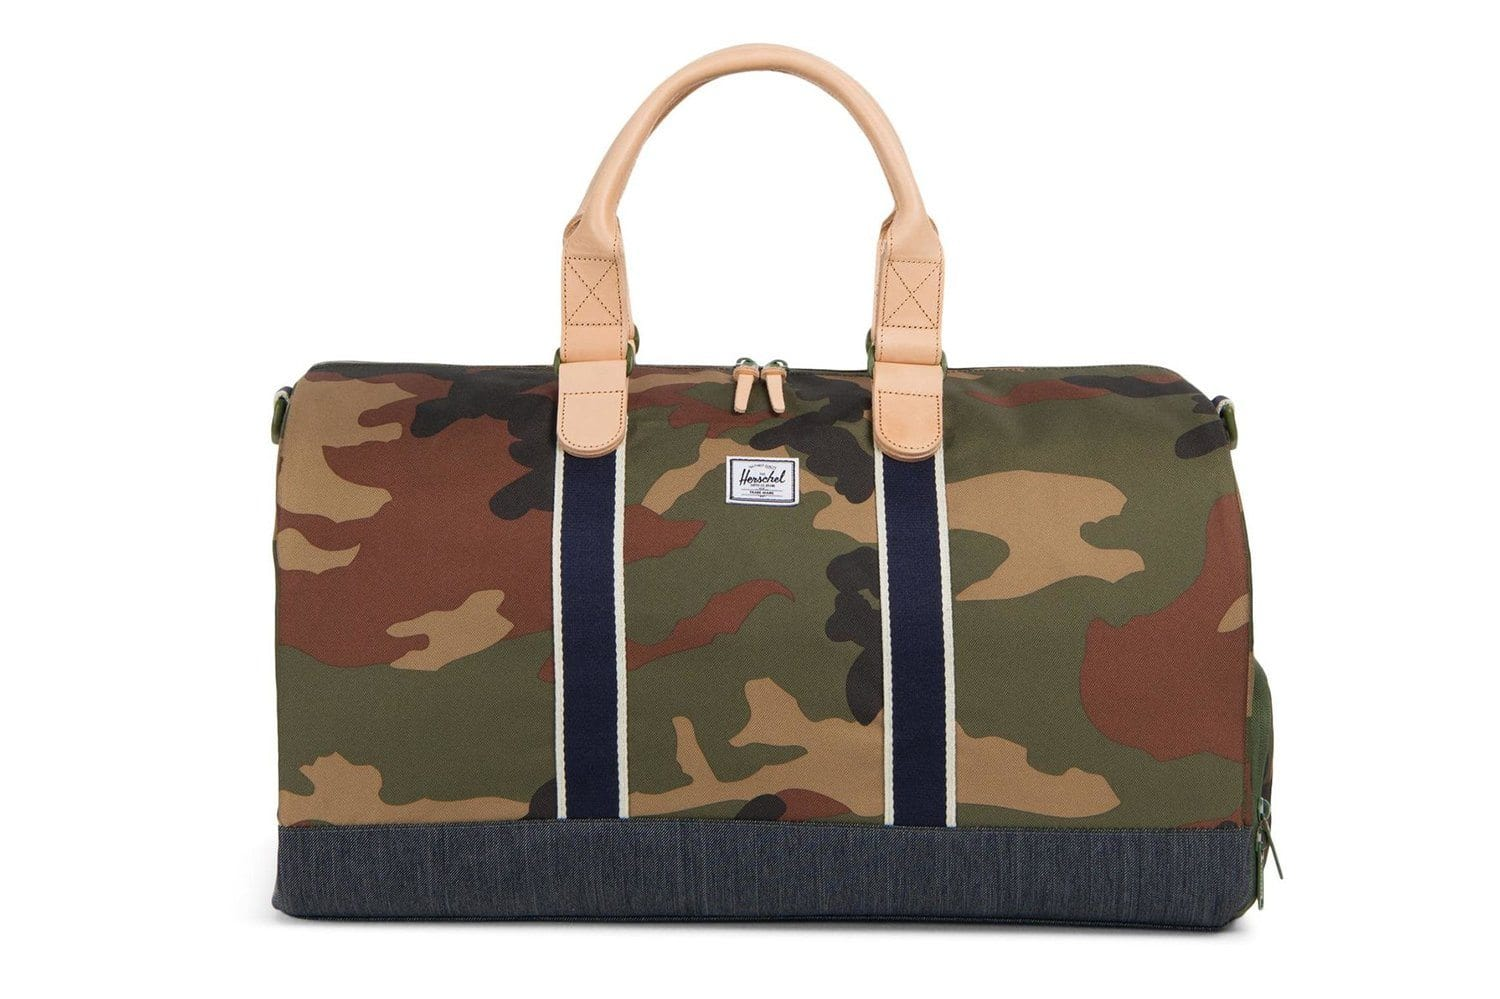 NOVEL 600D POLY BAGS HERSCHEL CAMO/ DENIM OS